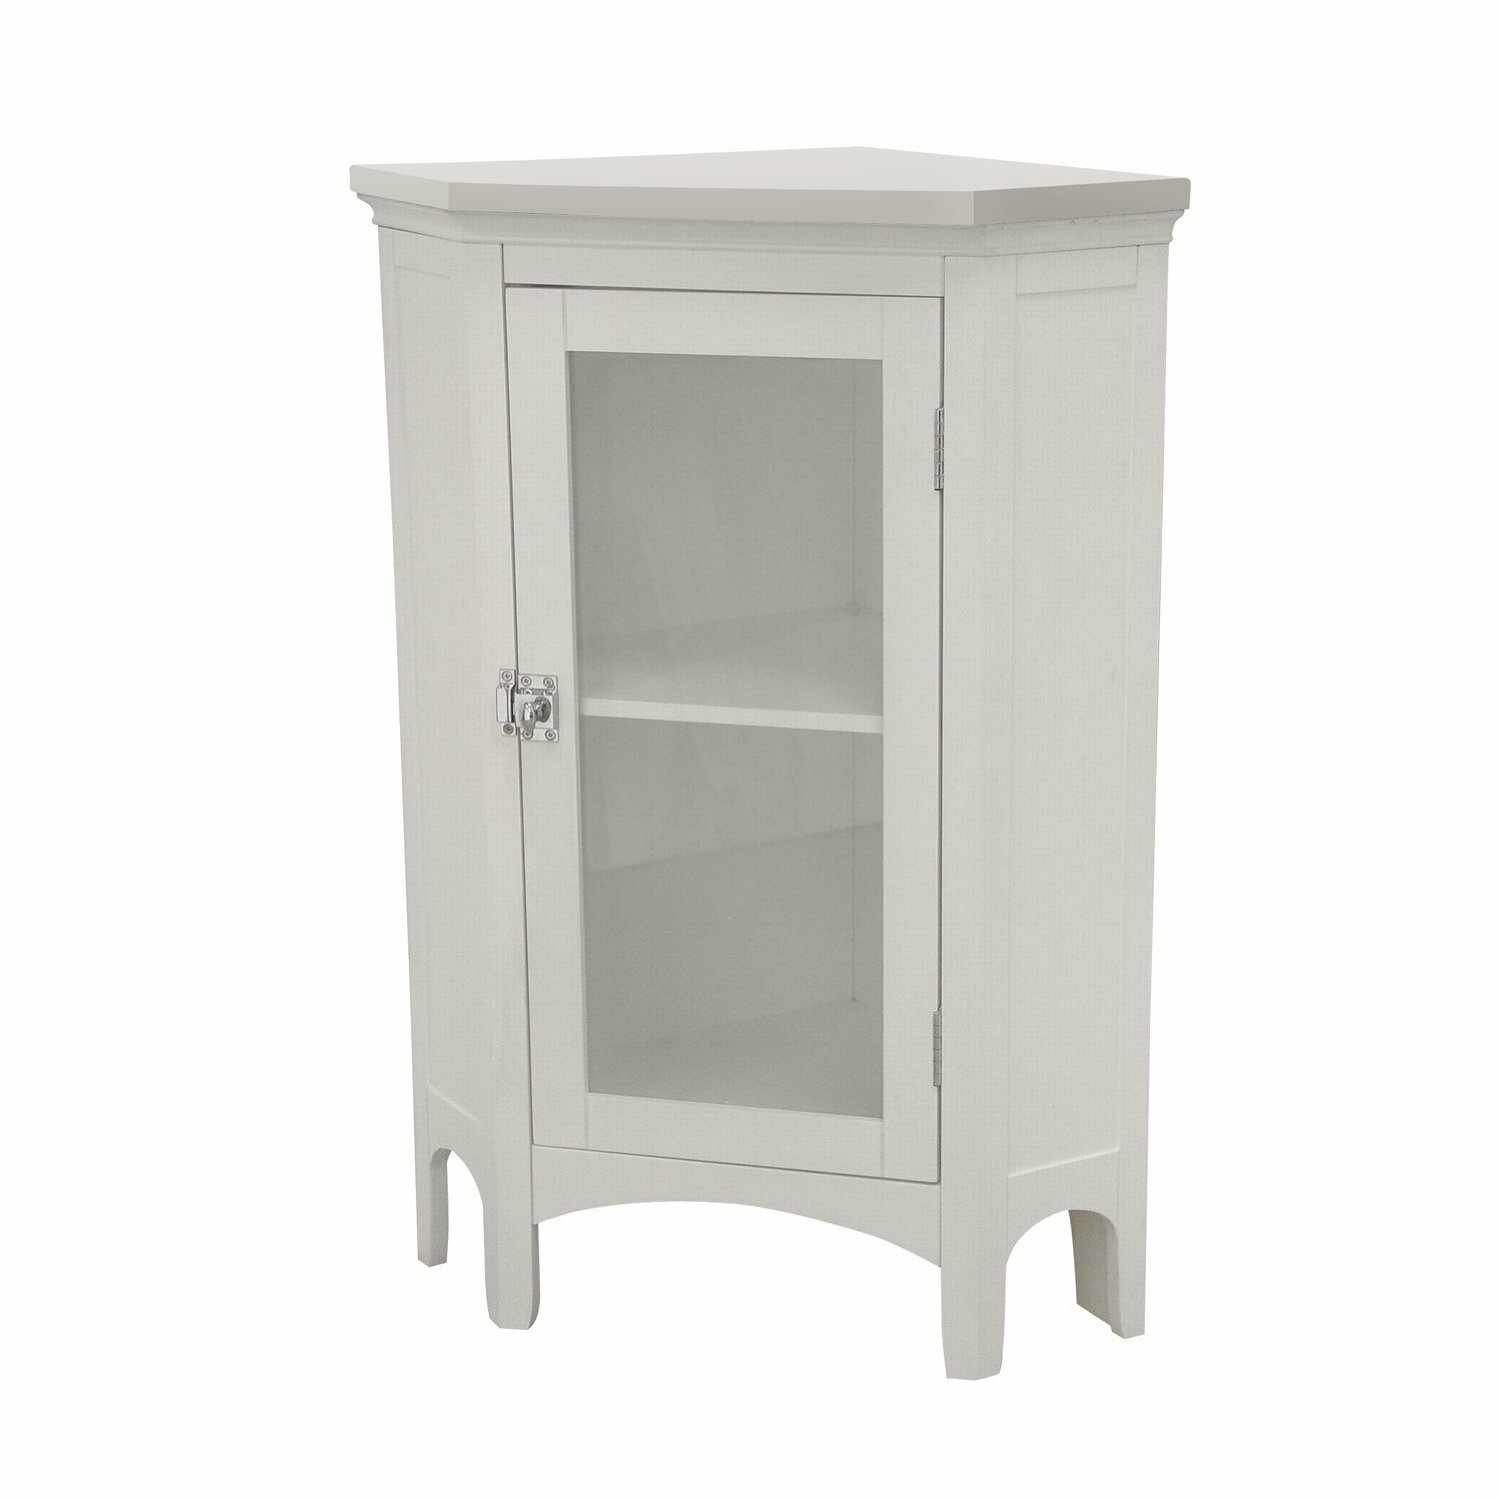 Beachcrest Home Sumter Corner Freestanding Floor Cabinet Reviews Wayfair